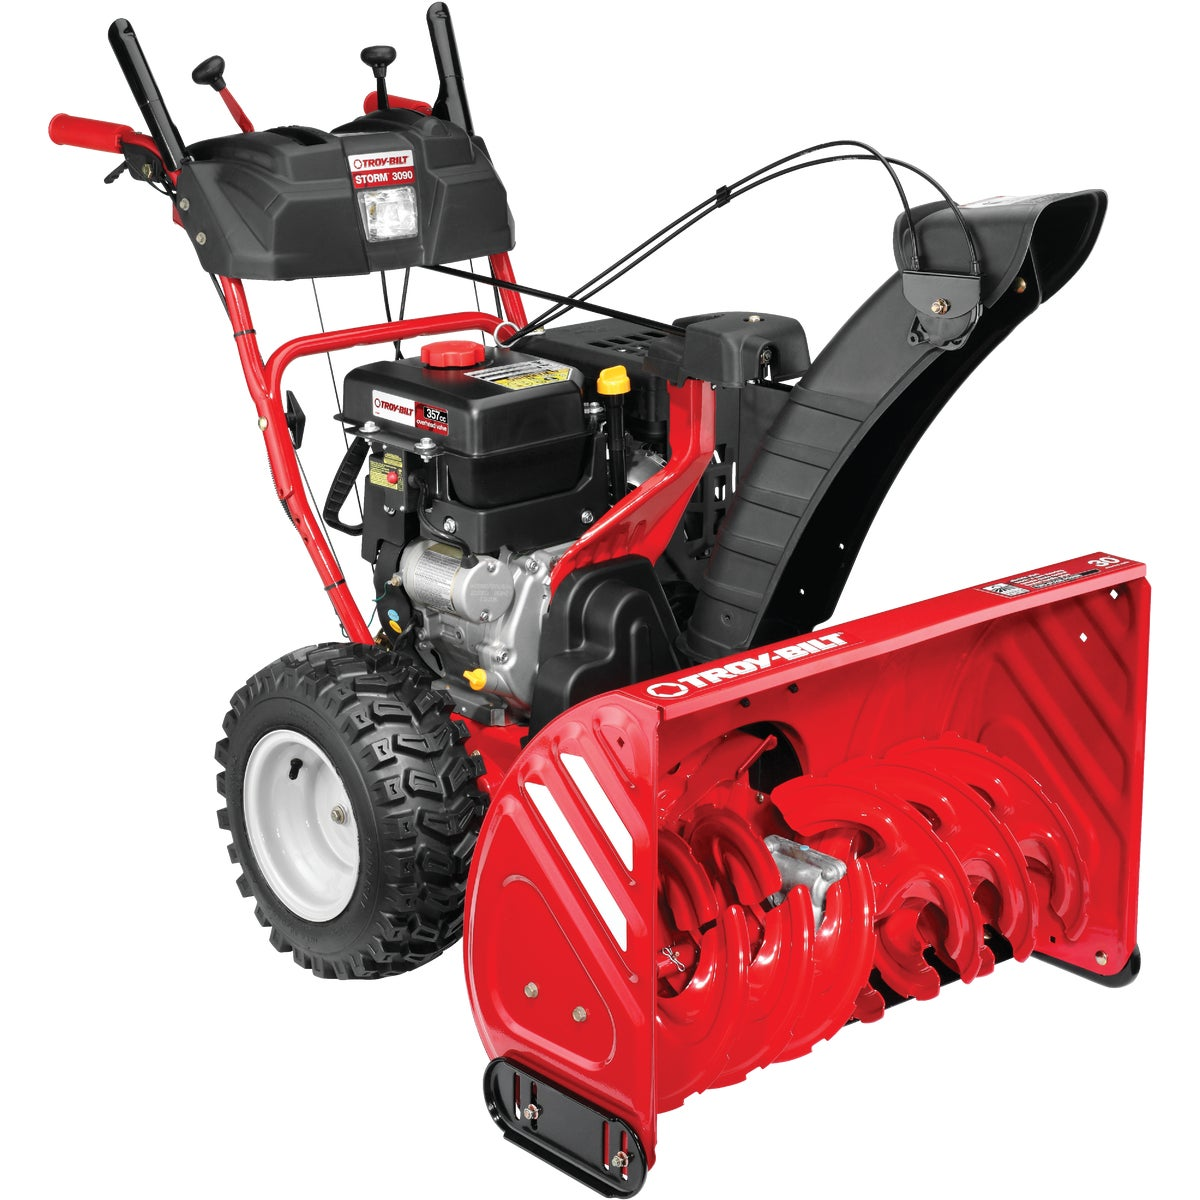 Troy-Bilt 30 In. 2-Stage 4-Cycle Gas Snow Blower, 31AH5DP5766